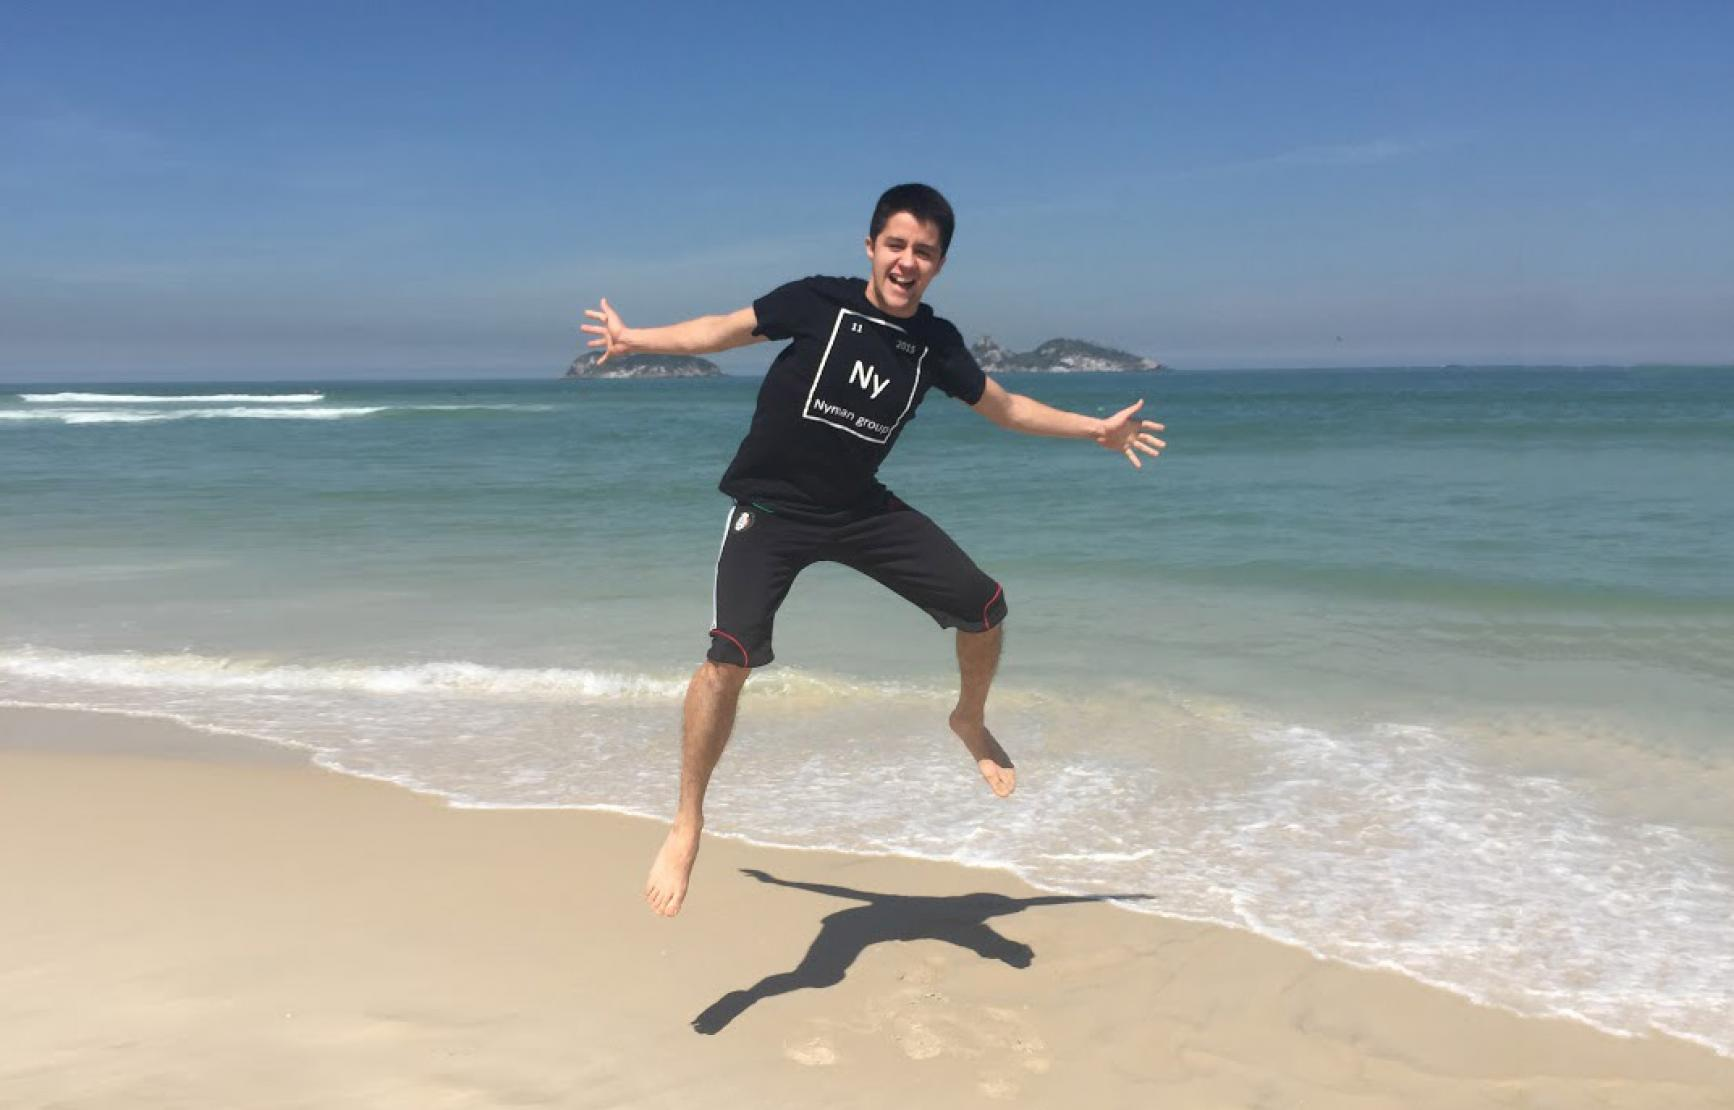 Collin Muniz wearing a chemistry t-shirt jumping on the beach